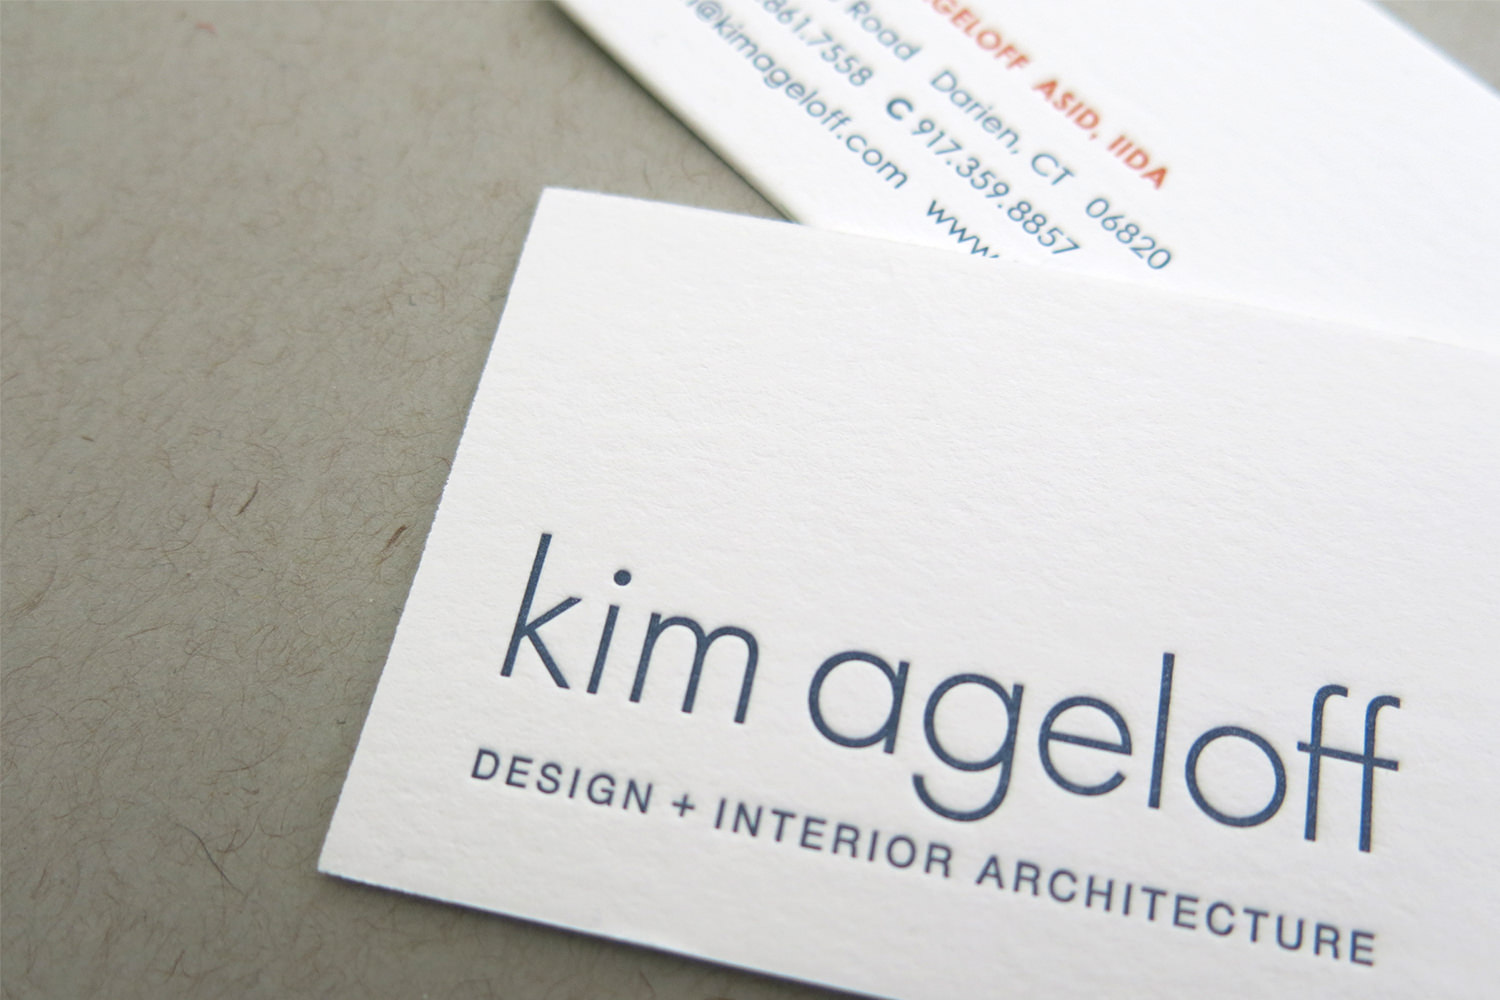 Kim Ageloff Design + Interior Architecture Two-Sided, Letterpress Business Card